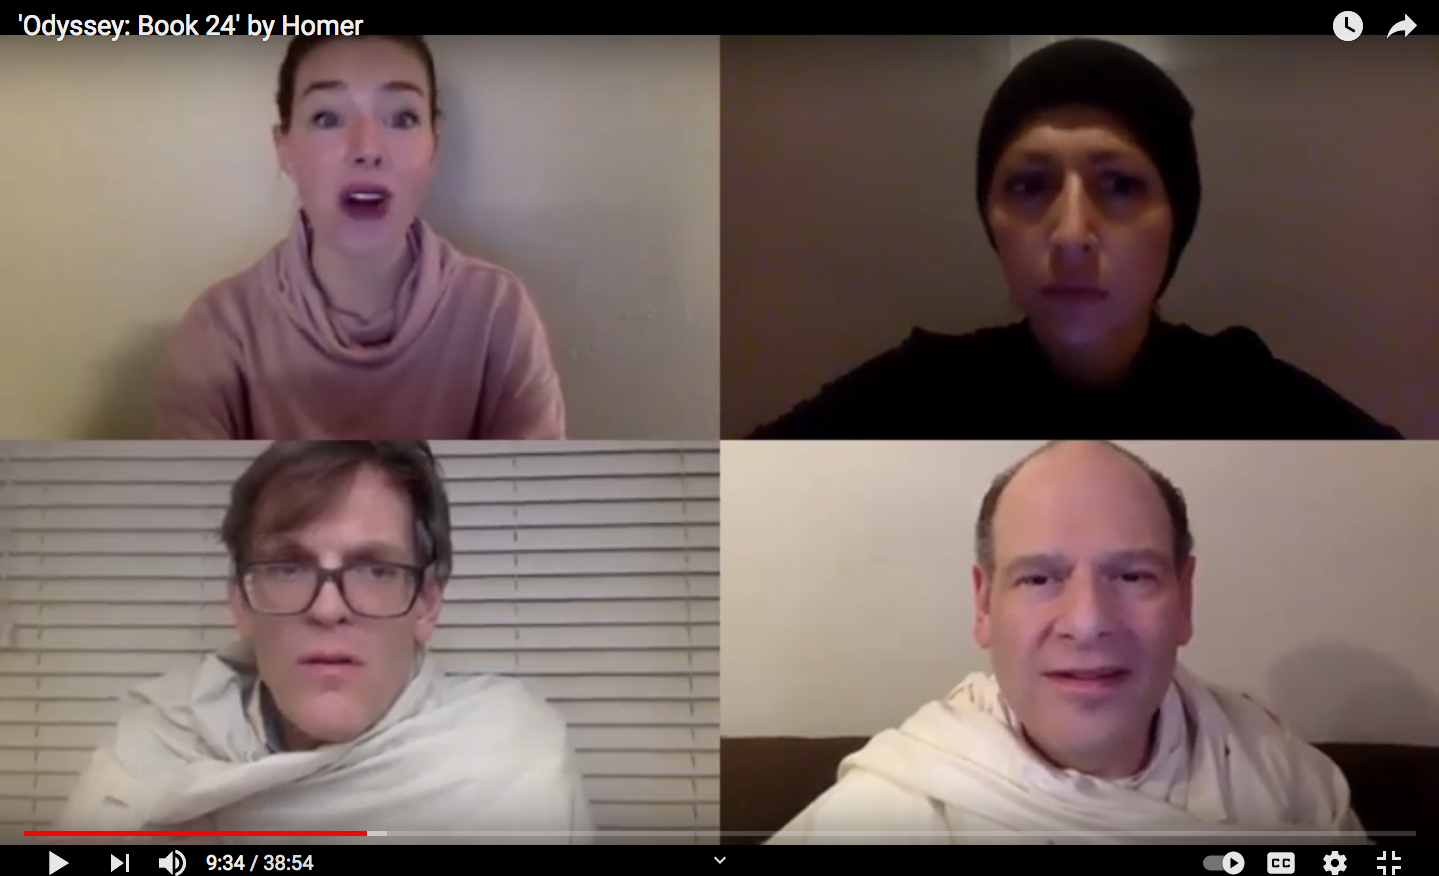 Figure 3. A screenshot from the virtual performance of Odyssey book 24 featuring, clockwise from the top left: Francesca Mintowt-Czyz as the narrator, Anne Mason as Amphimedon, Peter Parolin as Achilles, and Keith Otani Howard as Agamemnon.